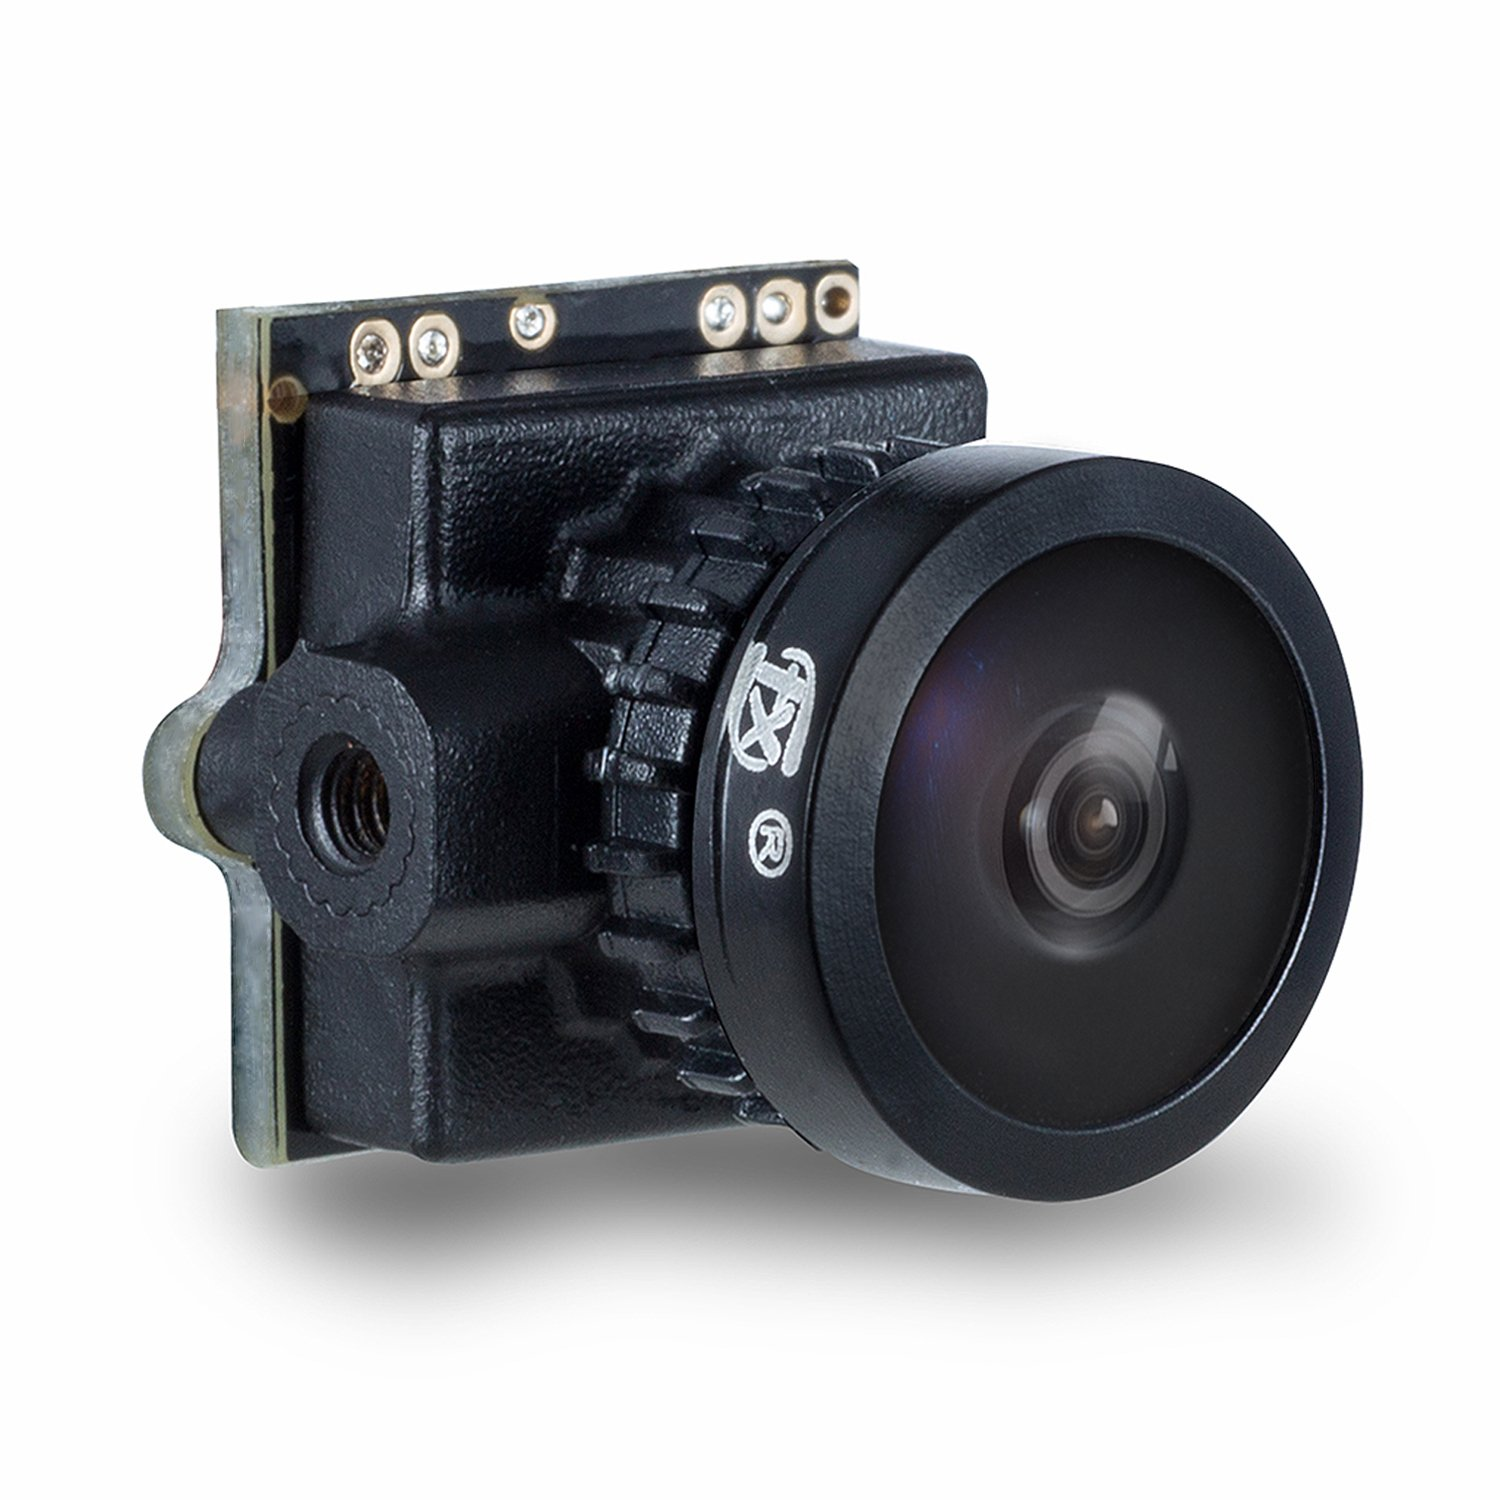 FXT 1/3 800TVL PAL/NTSC 16:9/4:3 Mini FPV Camera With Intergrated OSD For Drone HCW-FPV-T81